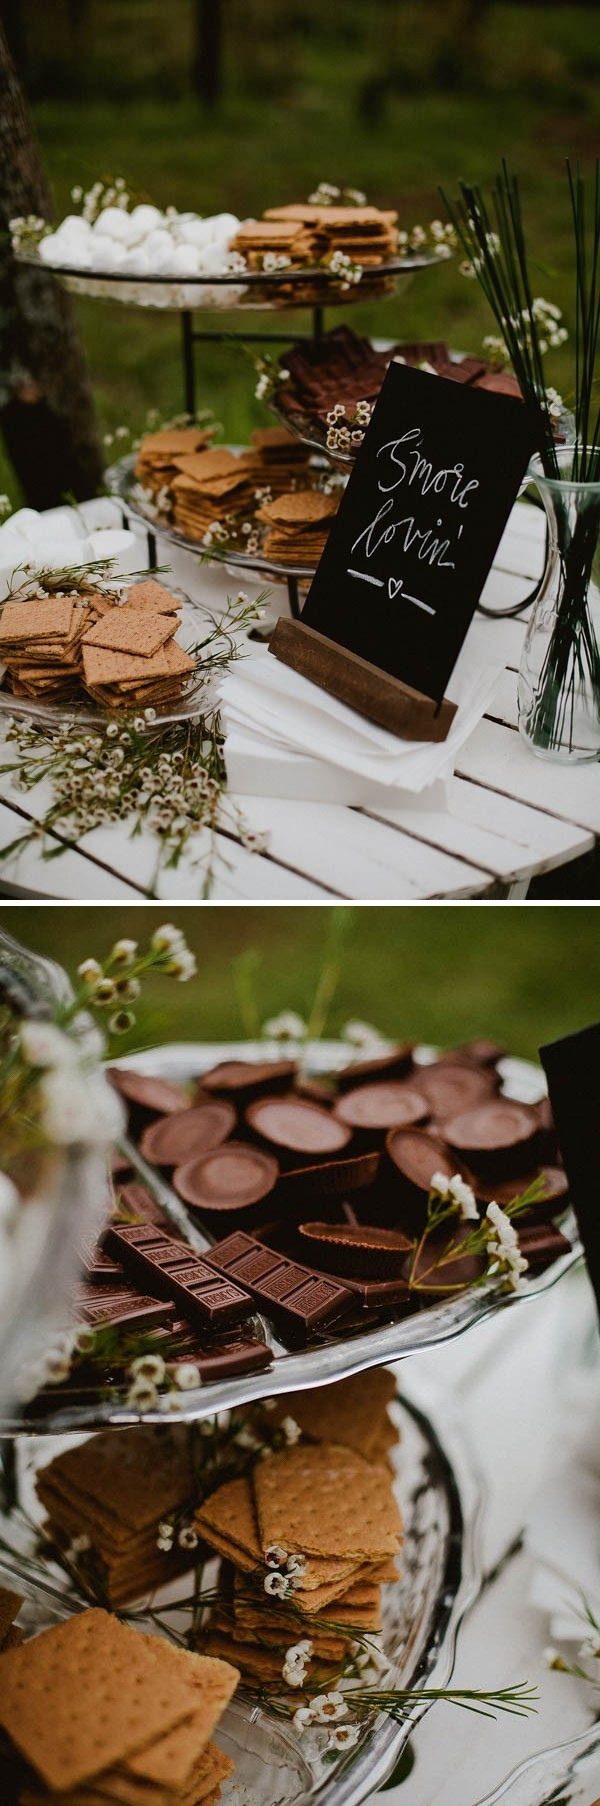 outdoor s'more wedding dessert display ideas